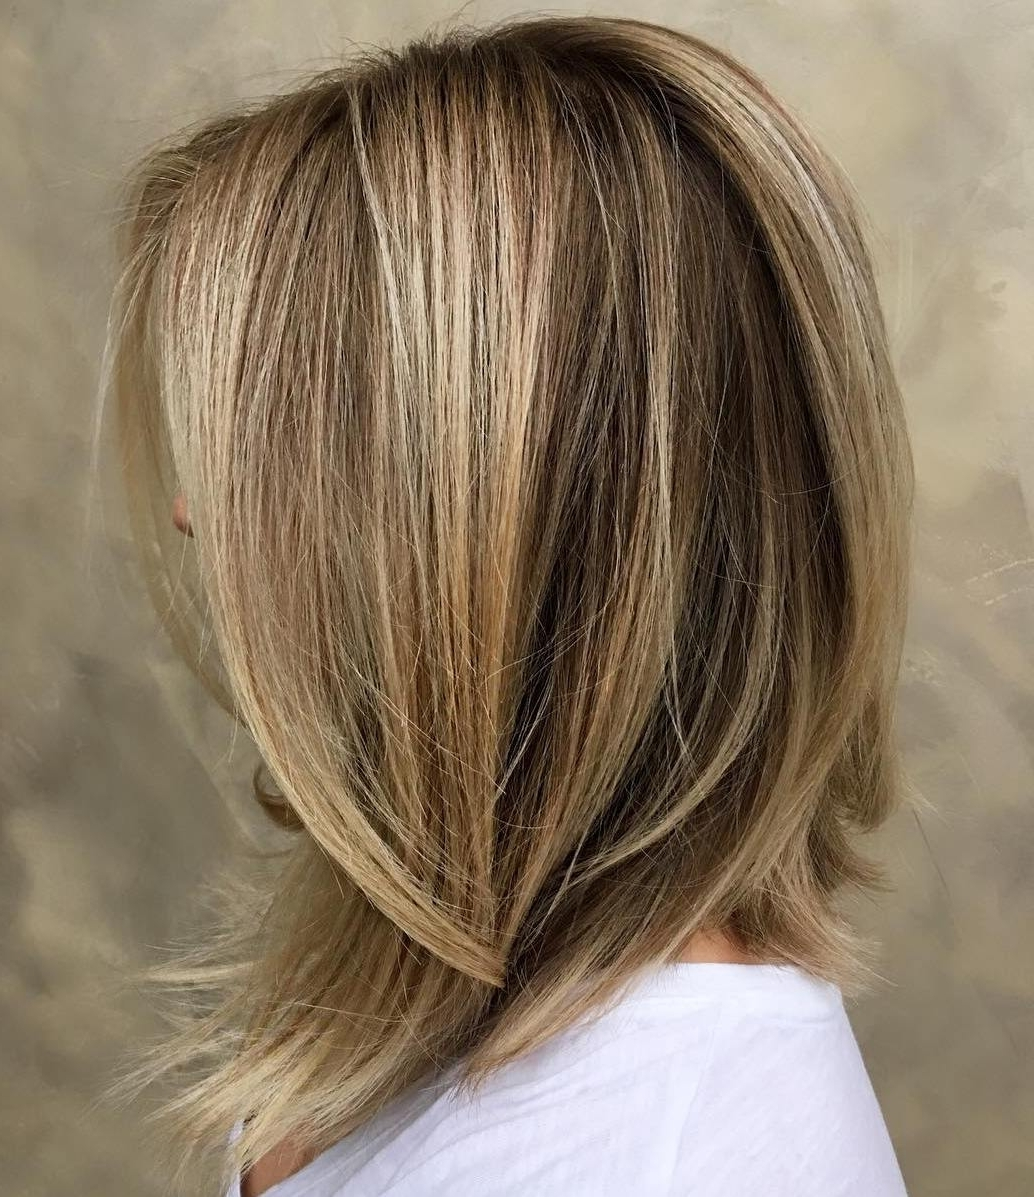 60 Inspiring Long Bob Hairstyles And Lob Haircuts 2018 Regarding Well Known Brown Blonde Balayage Lob Hairstyles (View 6 of 20)